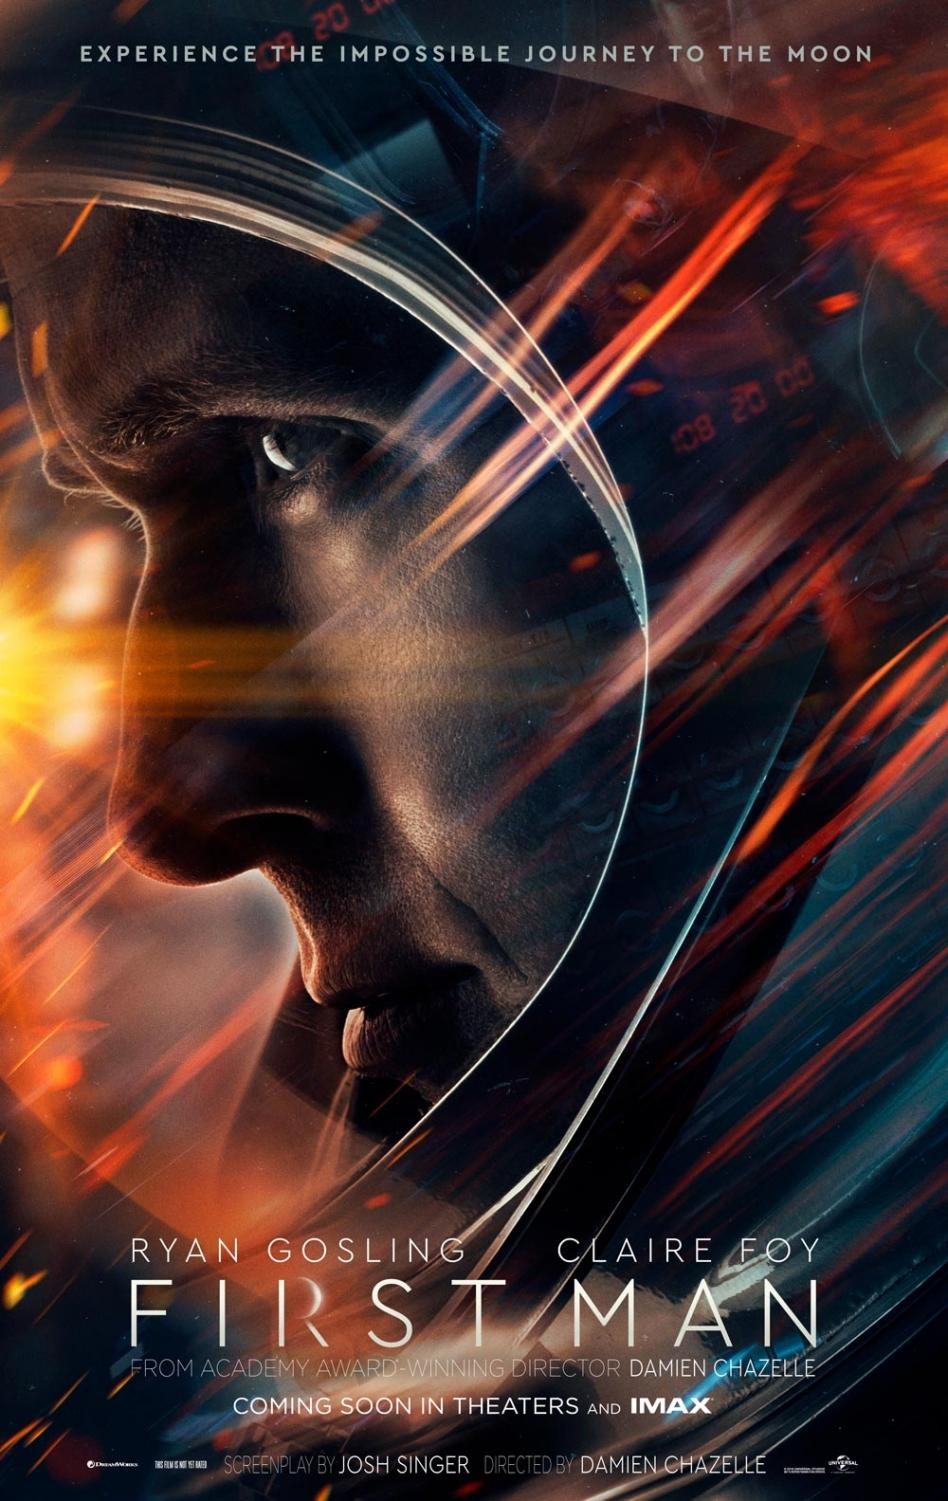 First Man came to theaters on October 12 and grossed $16 million on opening weekend.